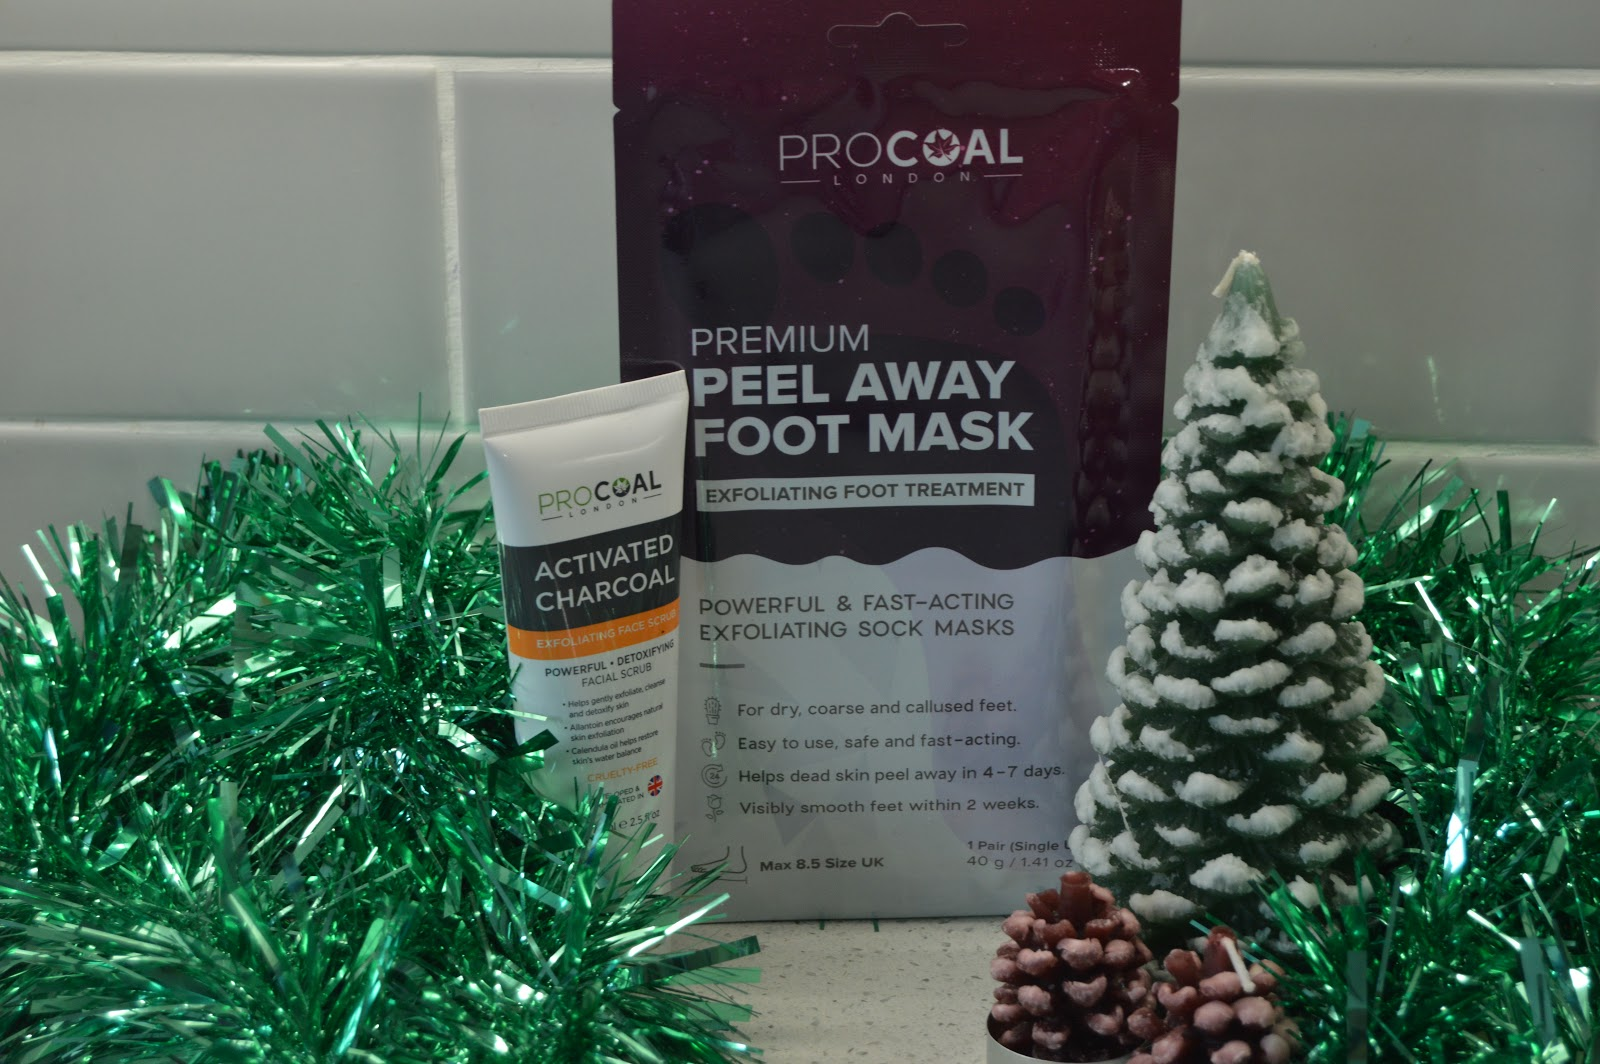 Pro Coal peel away foot mask